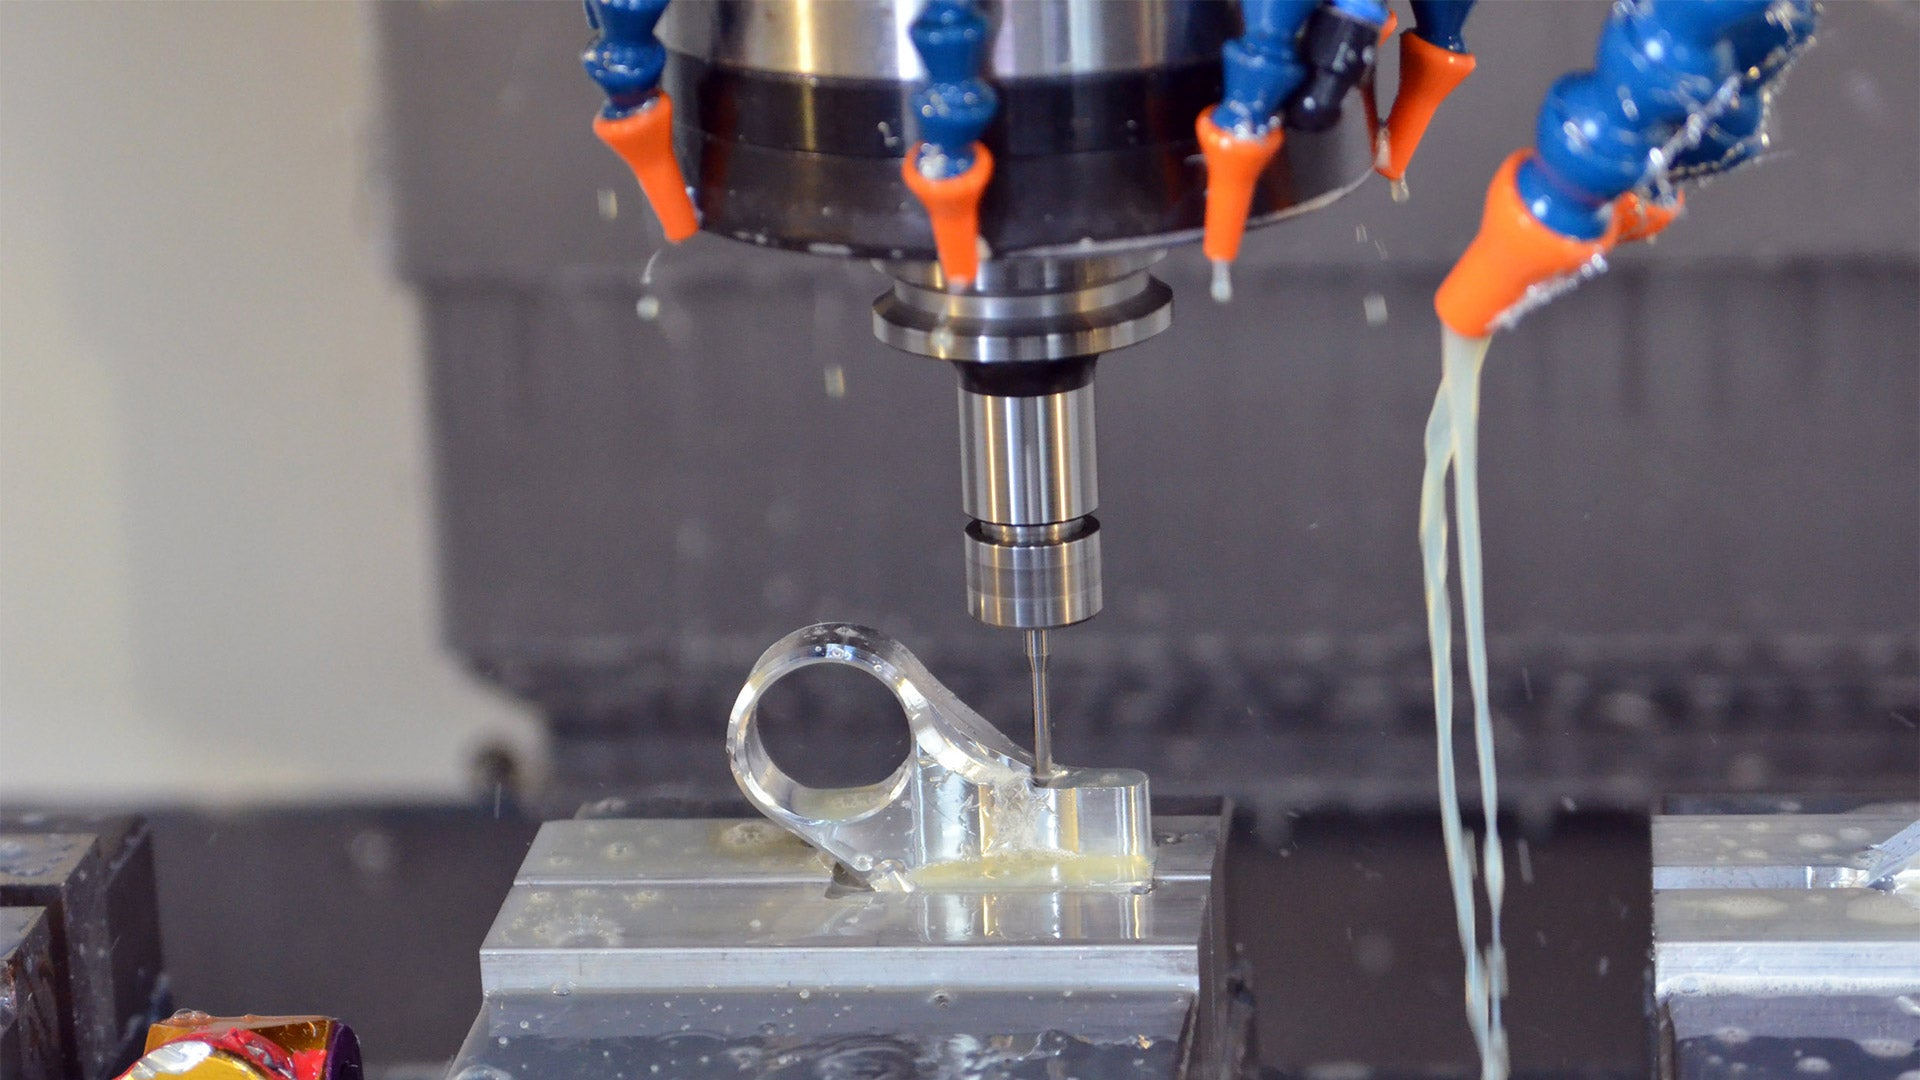 Machining a functional prototype for real world testing.